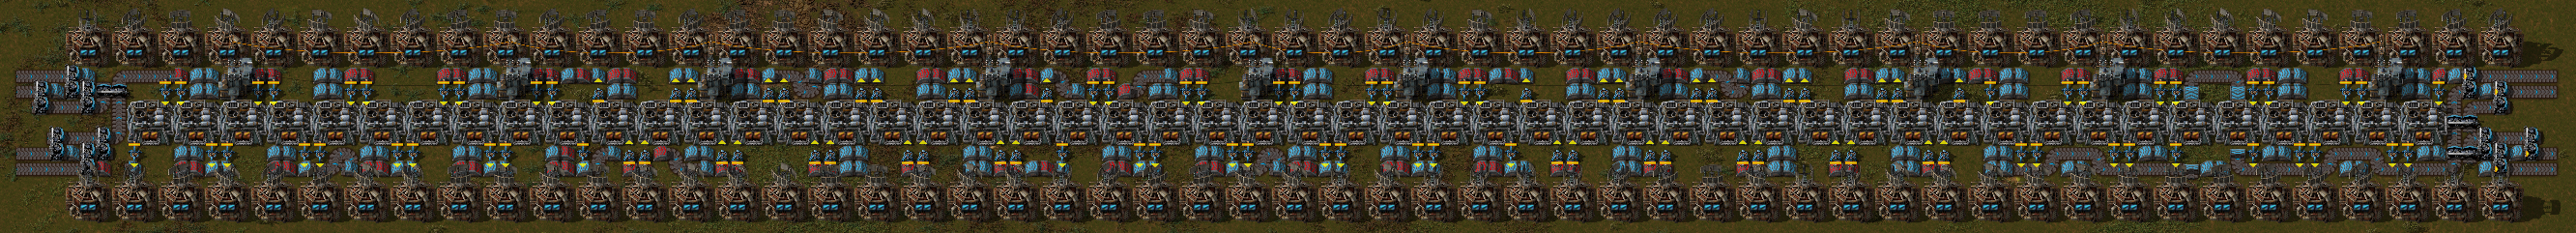 4 belts per row smelter.png